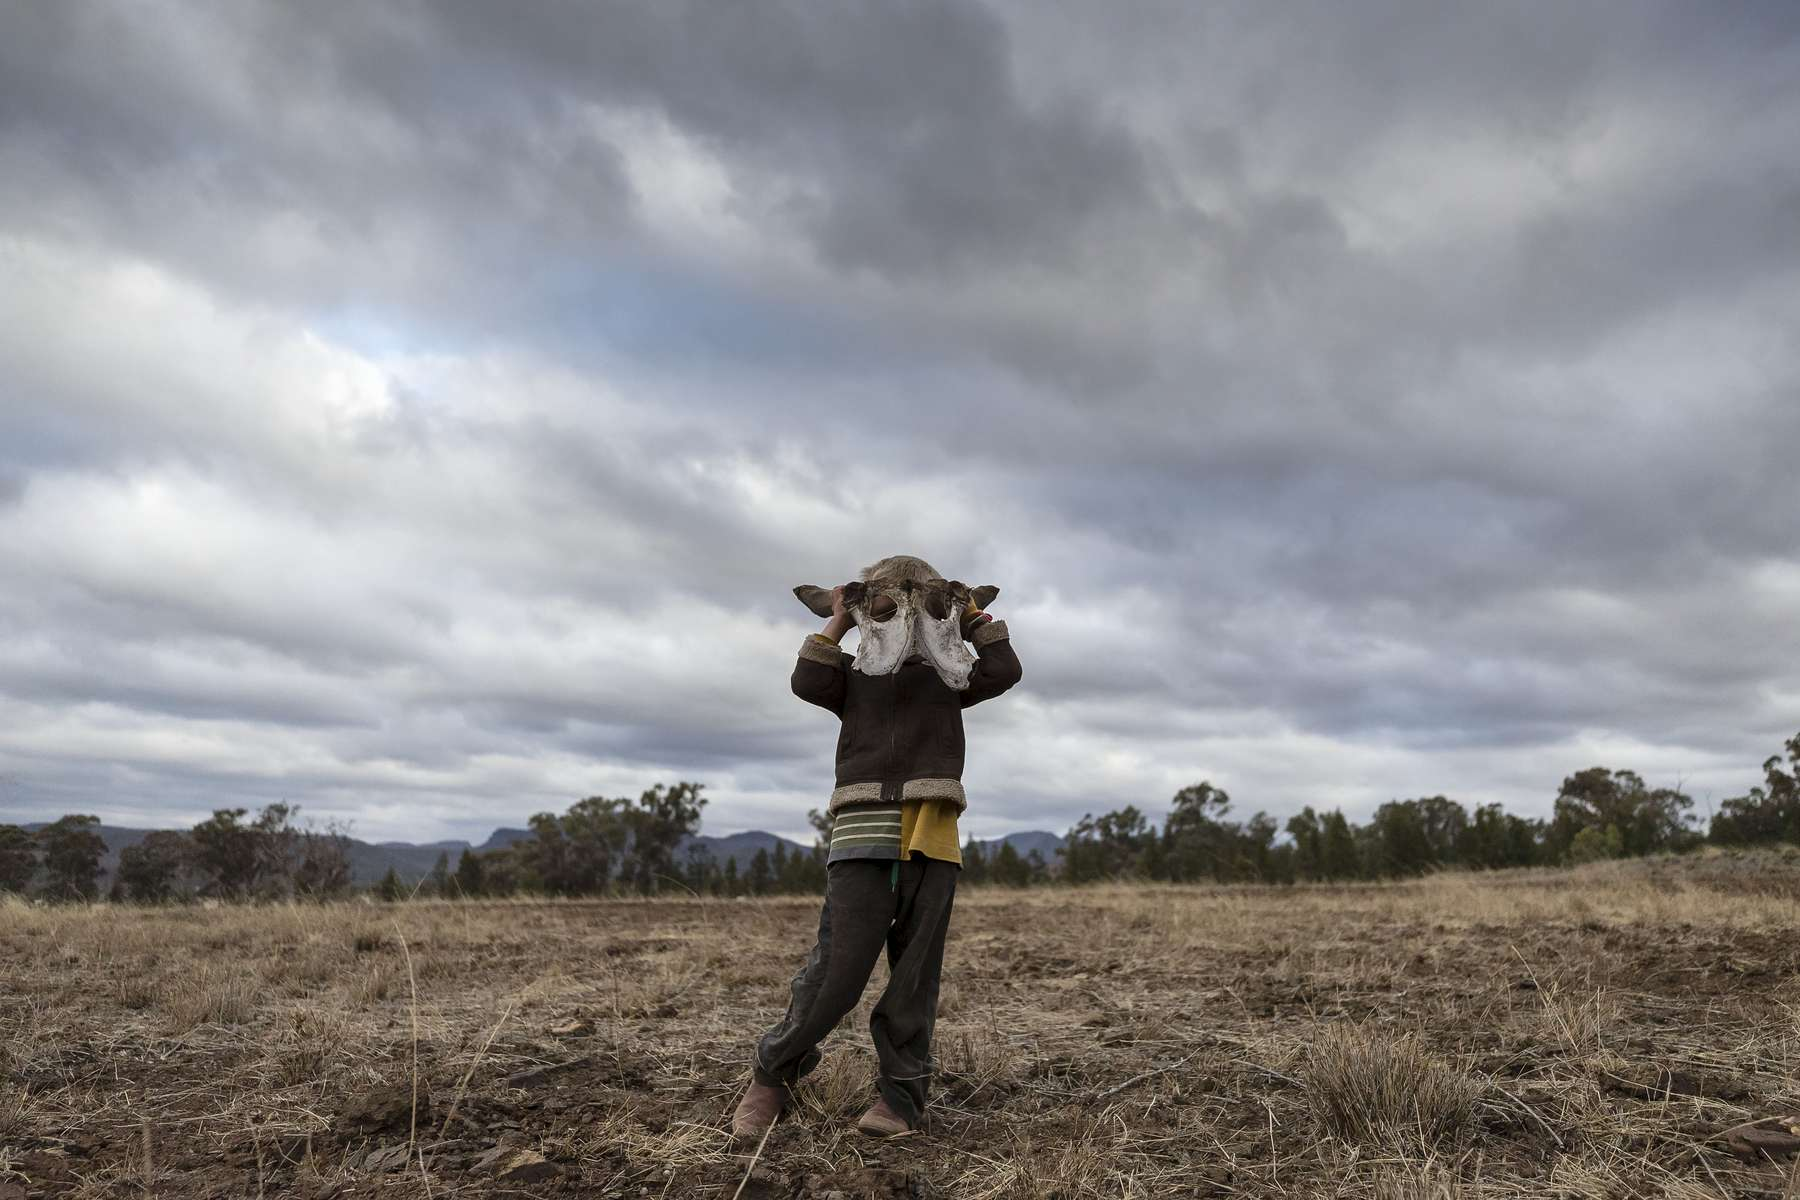 COONABARABRAN , NEW SOUTH WALES - JUNE 17:  Harry Taylor,6, wears what he calls his 'monster hat'. The bones of dead livestock have become a common sight on the Taylor family farm during the drought. Asked what he wanted for his recent 6th birthday party all Harry replied was 'rain'. In the Central Western region of New South Wales, Australia, farmers continue to battle a crippling drought which many locals are calling the worst since 1902. In Warrumbungle Shire, where sharp peaks fall away to once fertile farmland the small town of Coonabarabran is running out of water. The town dam is down to just 23% capacity, forcing residents to live with level six water restrictions. The New South Wales State government recently approved an emergency drought relief package of A$600m, of which at least A$250m is allocated for low interest loans to assist eligible farm businesses to recover. The package has been welcomed, though in the words of a local farmer {quote}it barely touches the sides{quote}. Now with the real prospect of a dry El-Nino weather pattern hitting the state in Spring, the longer term outlook for rain here is dire. June 17, 2018 in Coonabarabran, Australia.  (Photo by Brook Mitchell/Getty Images)